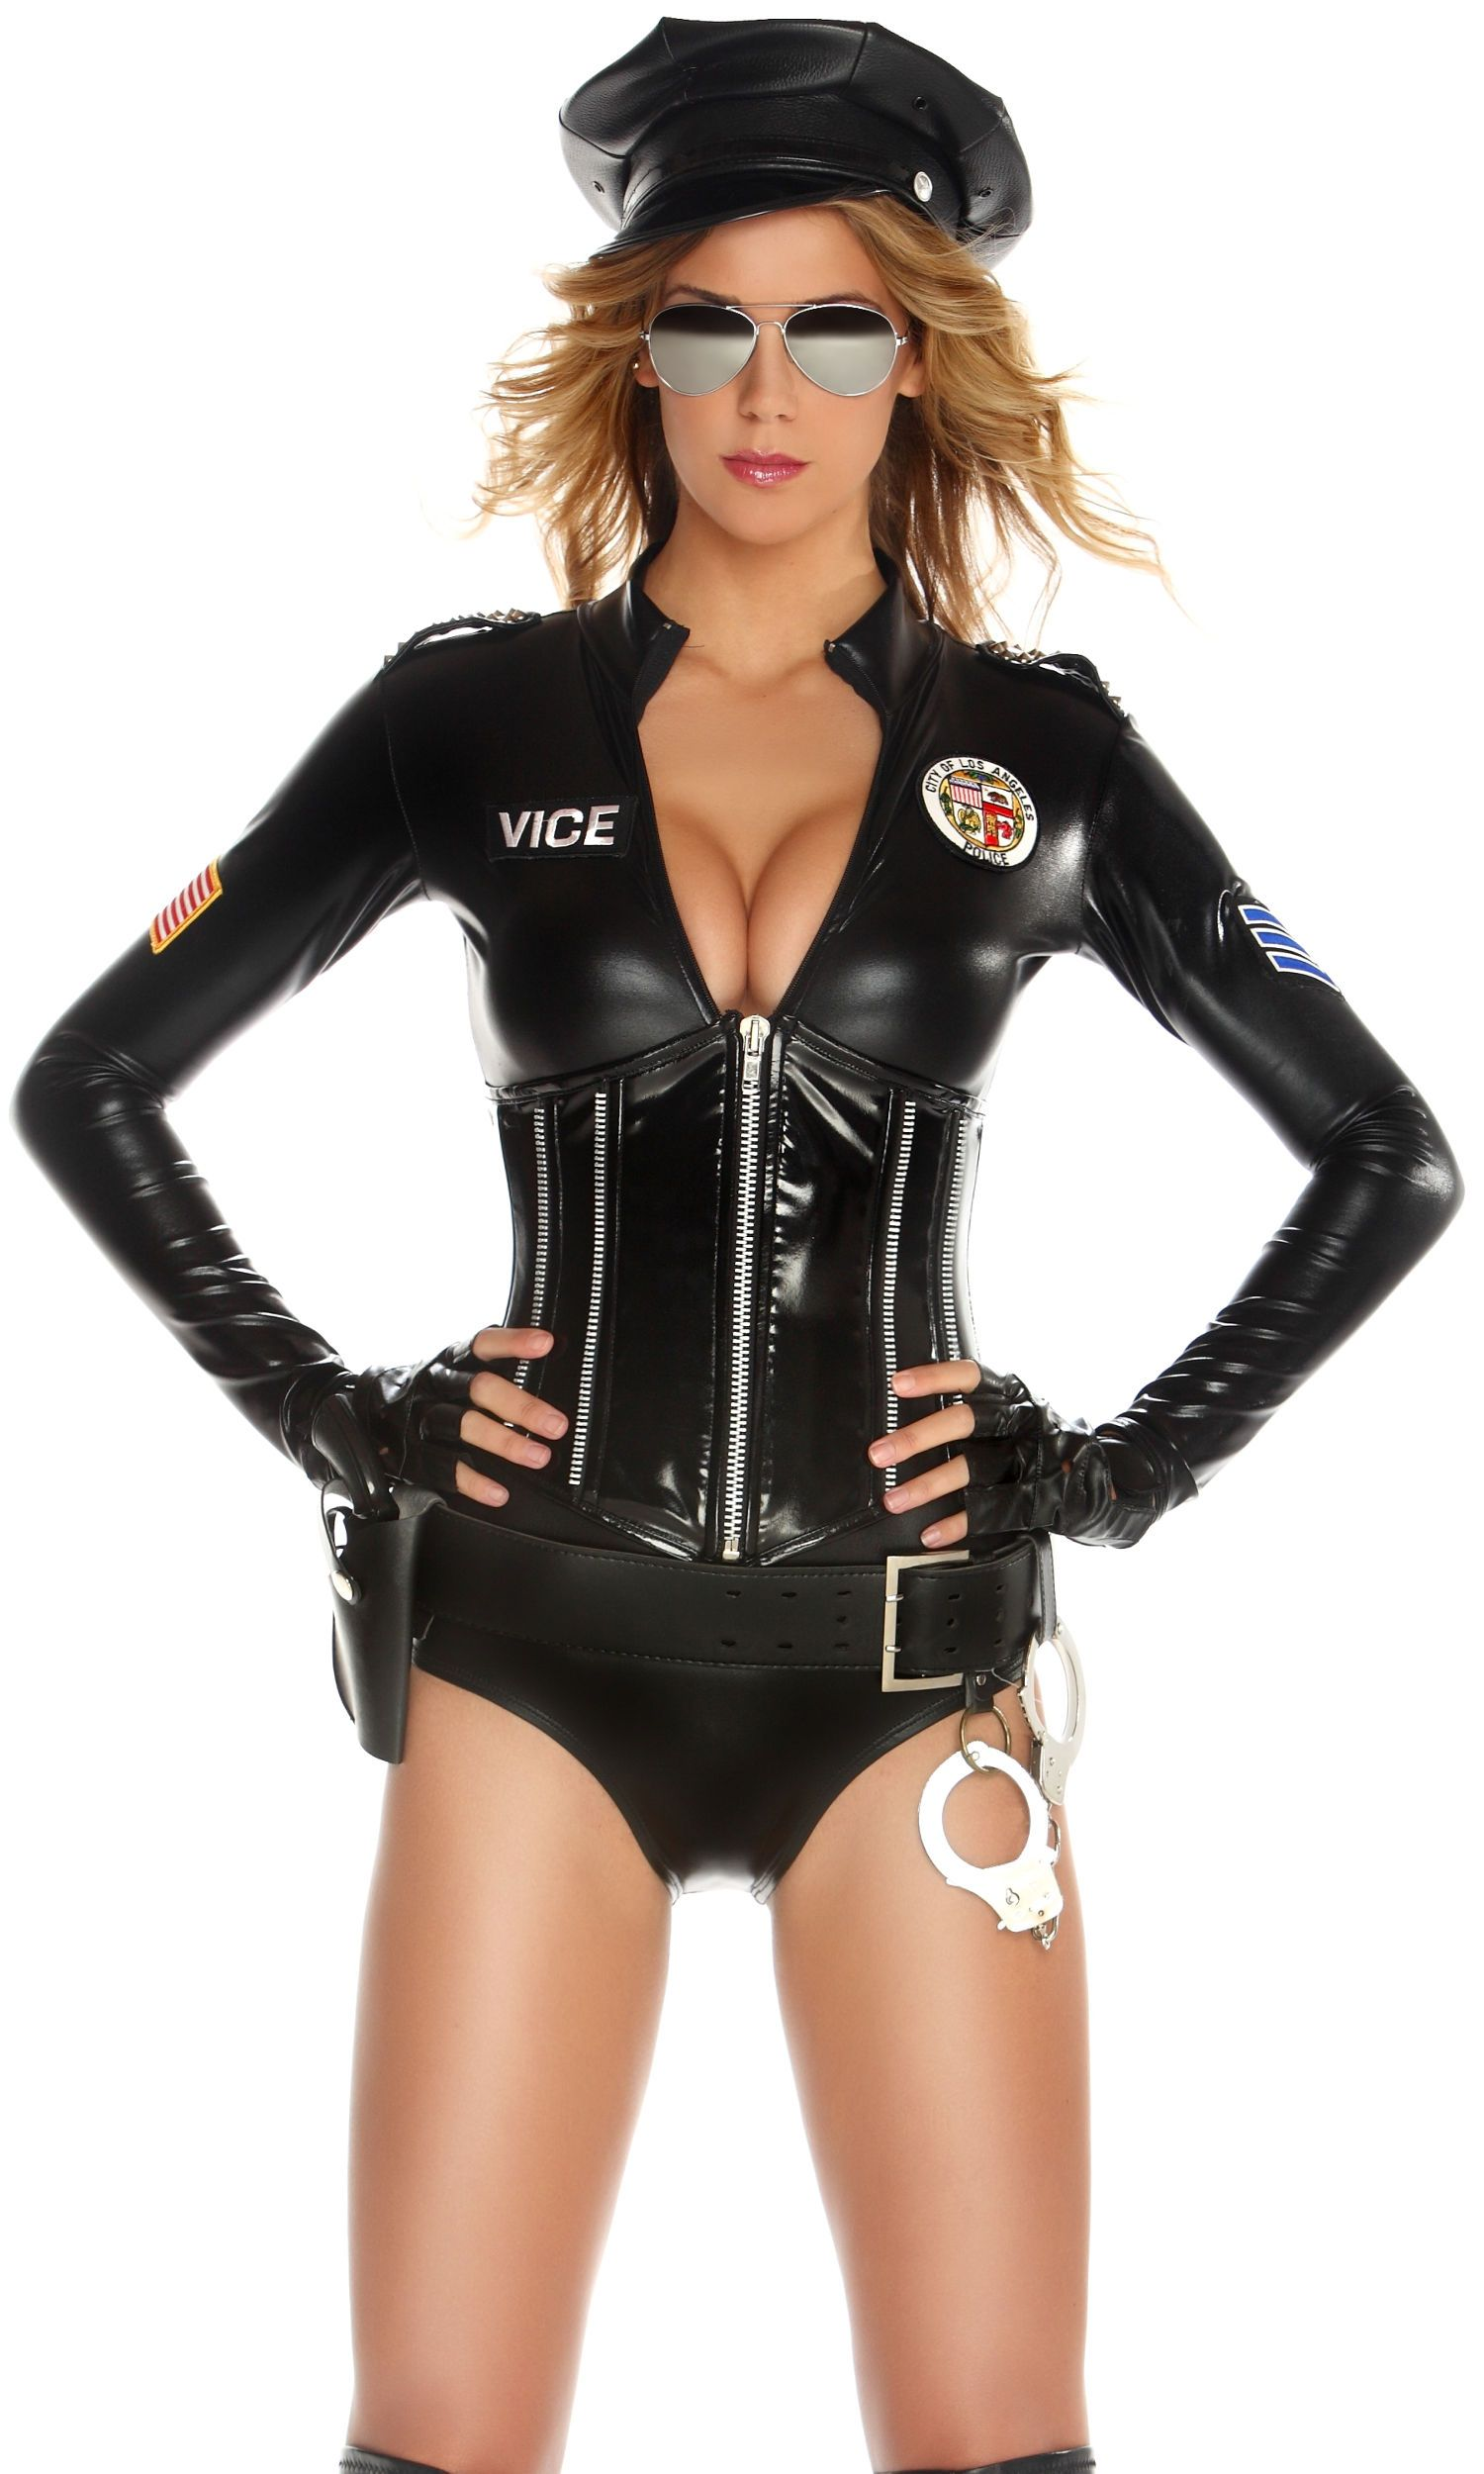 forplay top picks sexy police officer halloween costume mrs officer by forplay - Girls Cop Halloween Costume